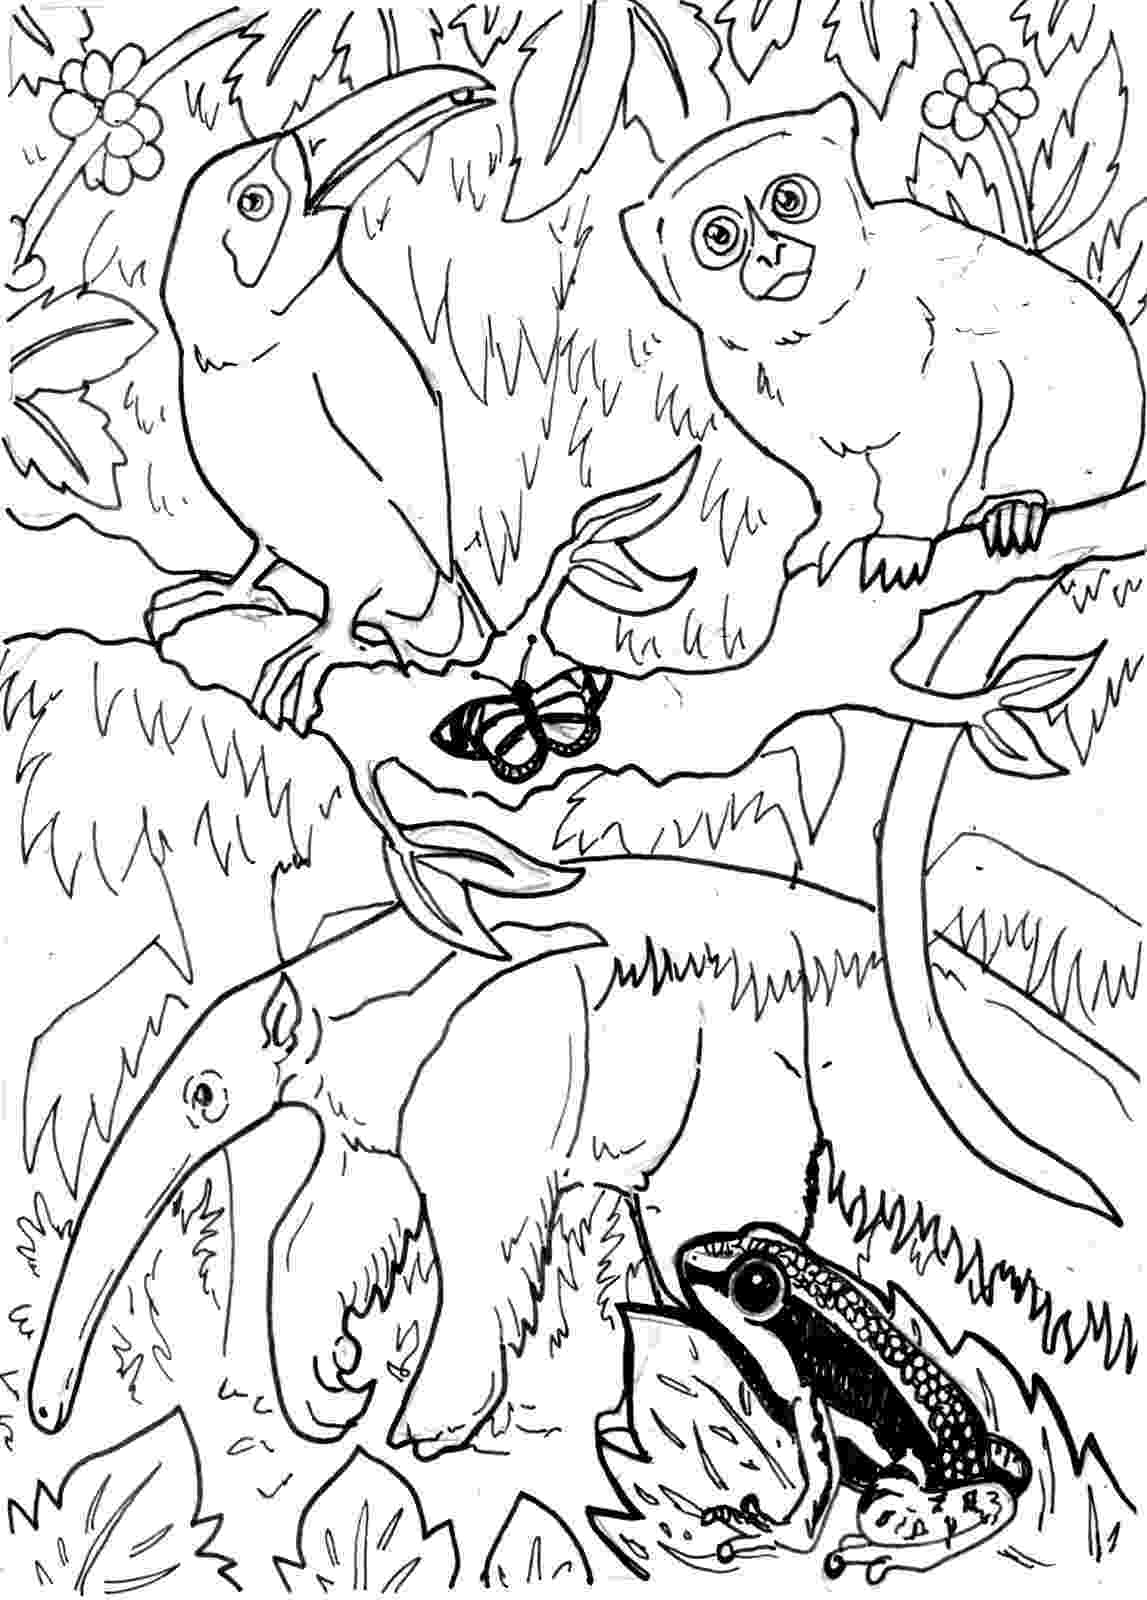 forest animals coloring pages deciduous forest with animals coloring page animals pages forest coloring